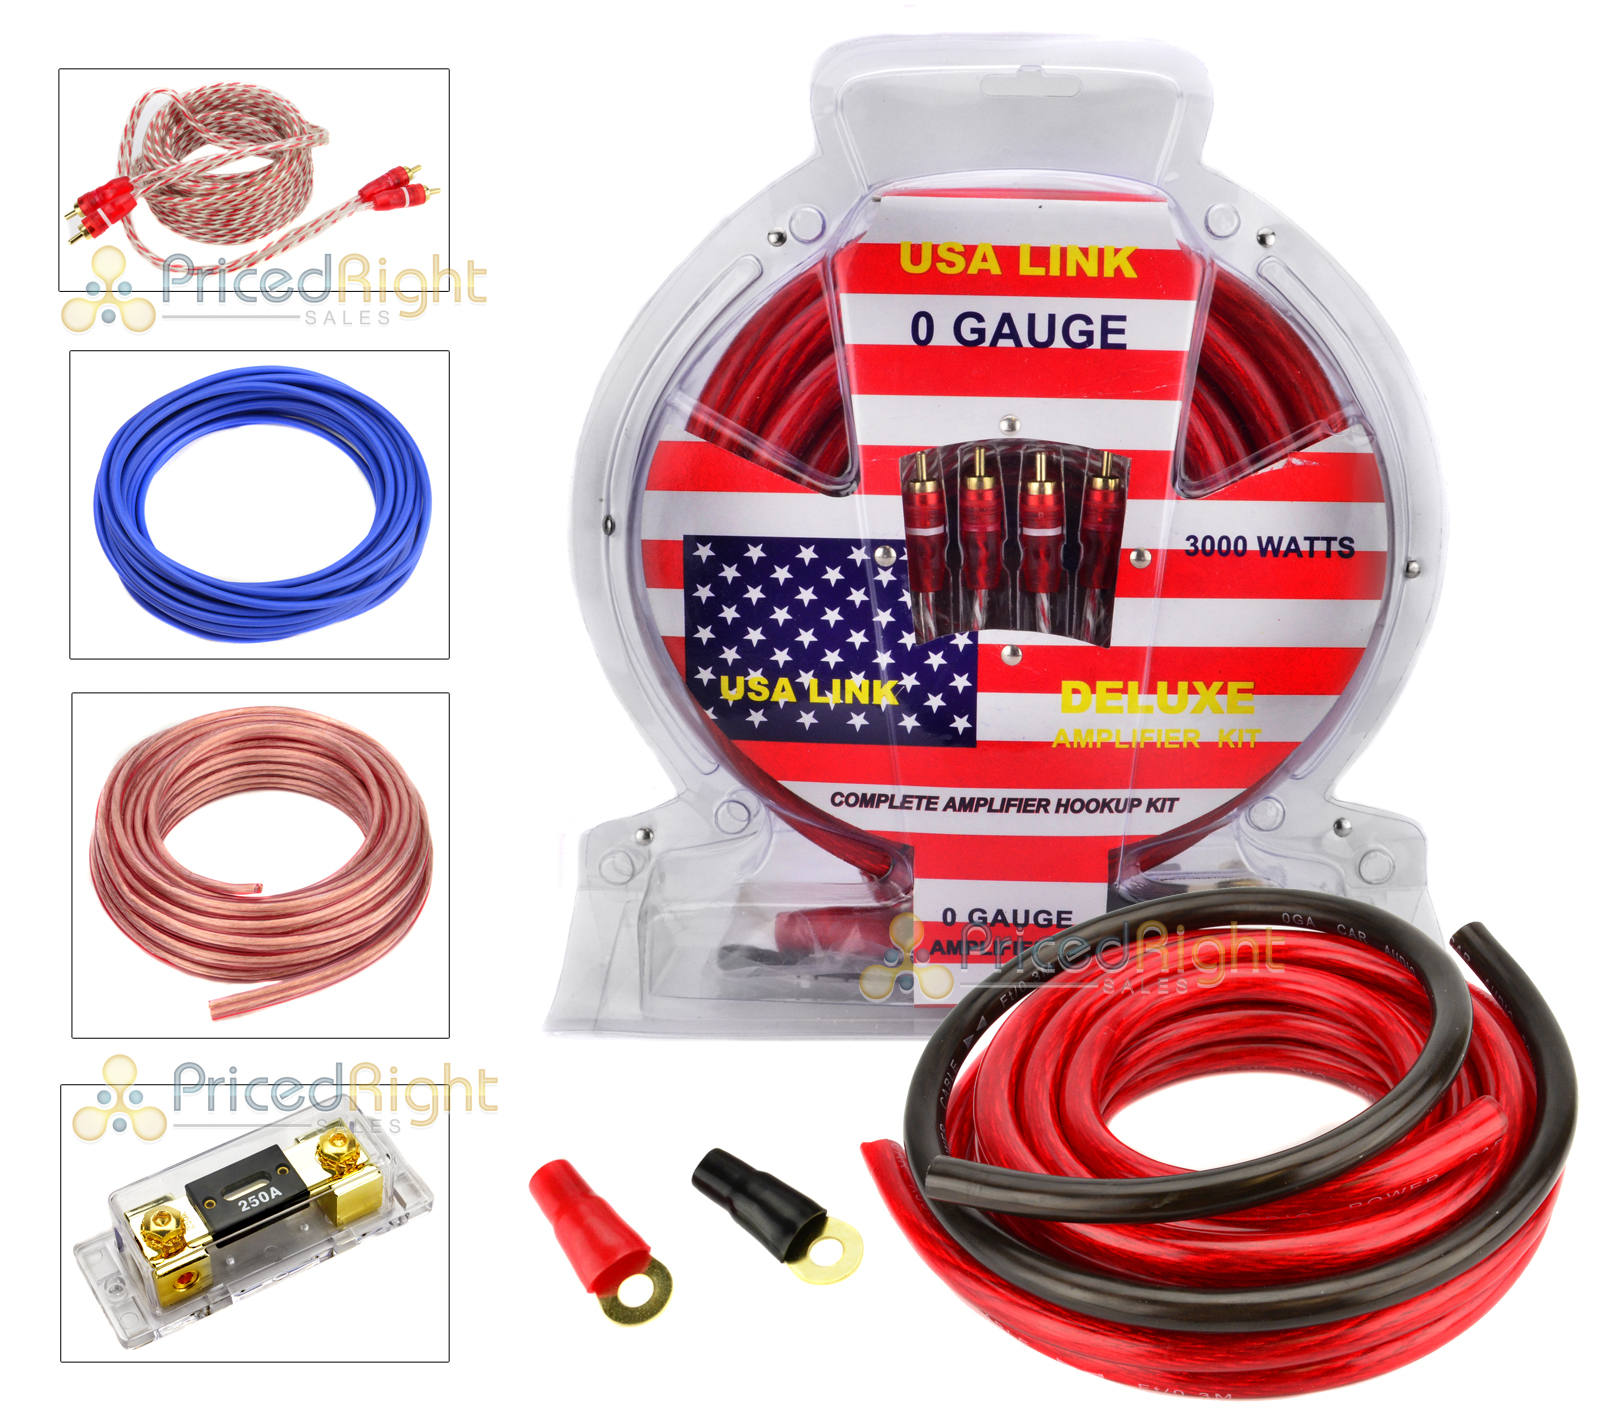 hight resolution of 0 gauge 3000w car amplifier wiring installation power kit amp 0 ga pack usa link